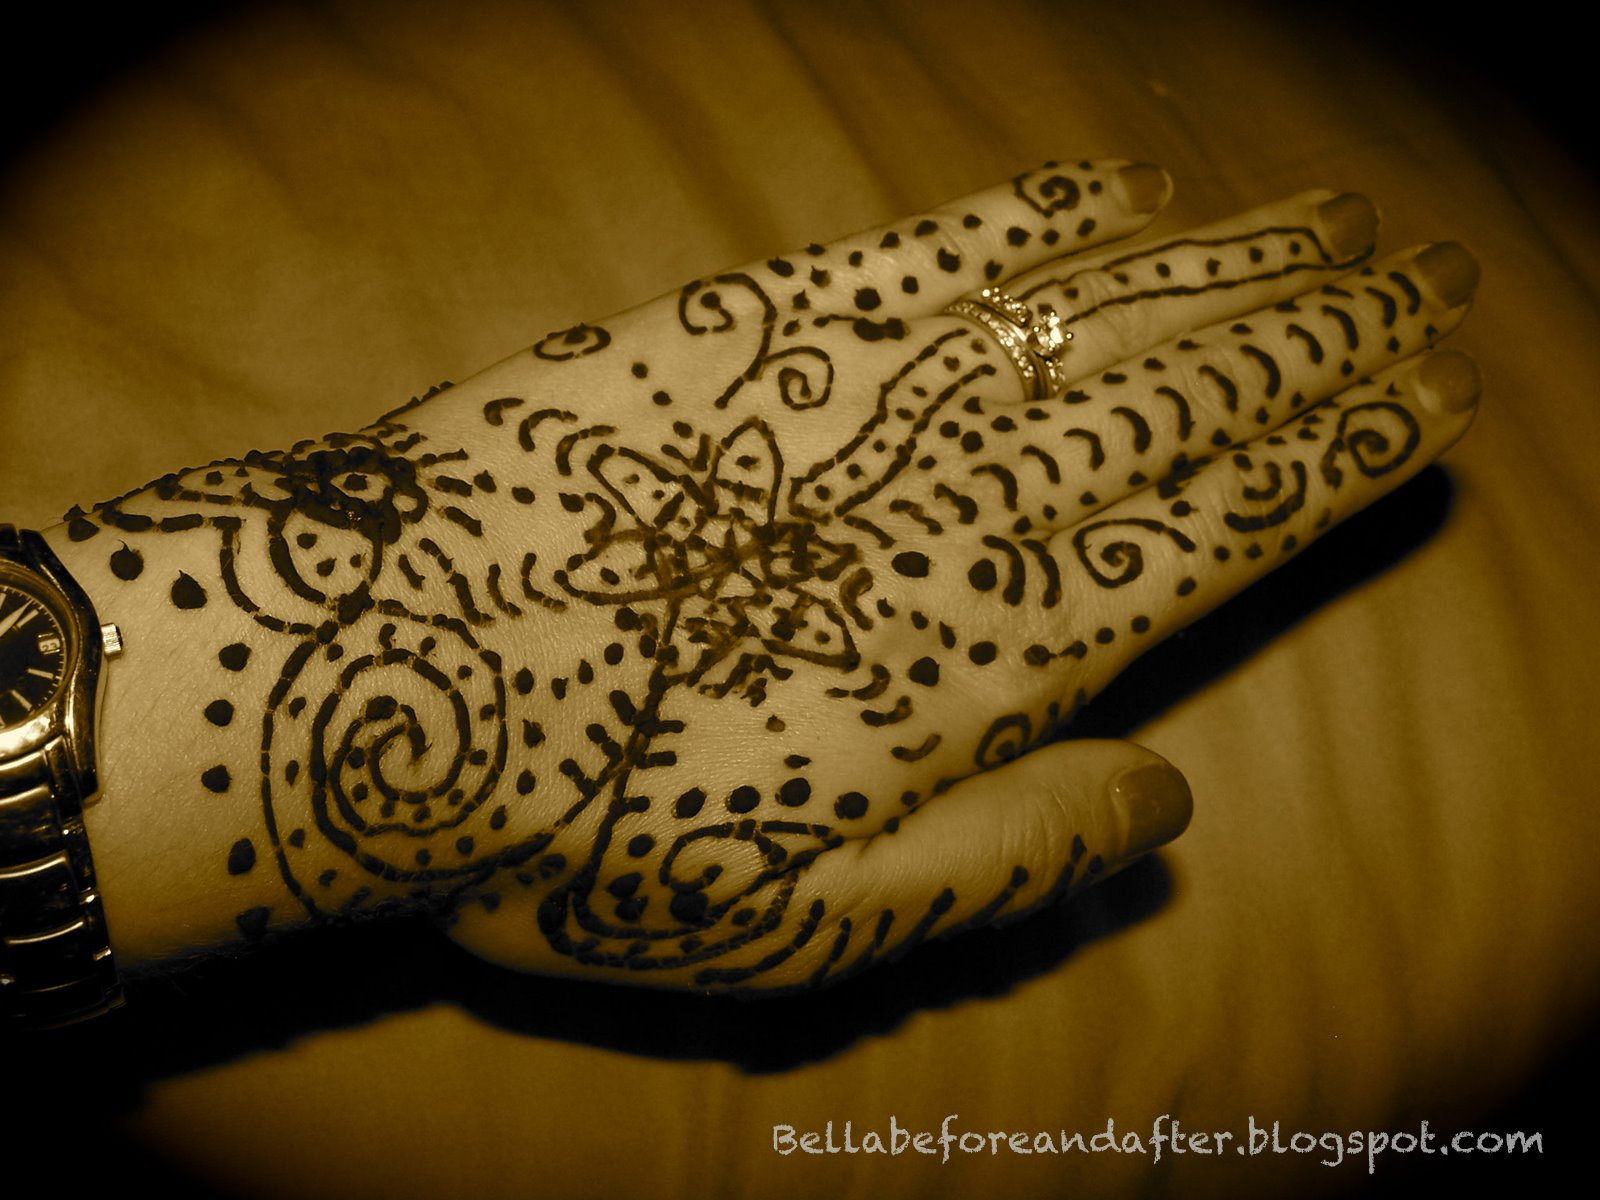 Bella Before And After More Mehndi Henna Designs Fun With The